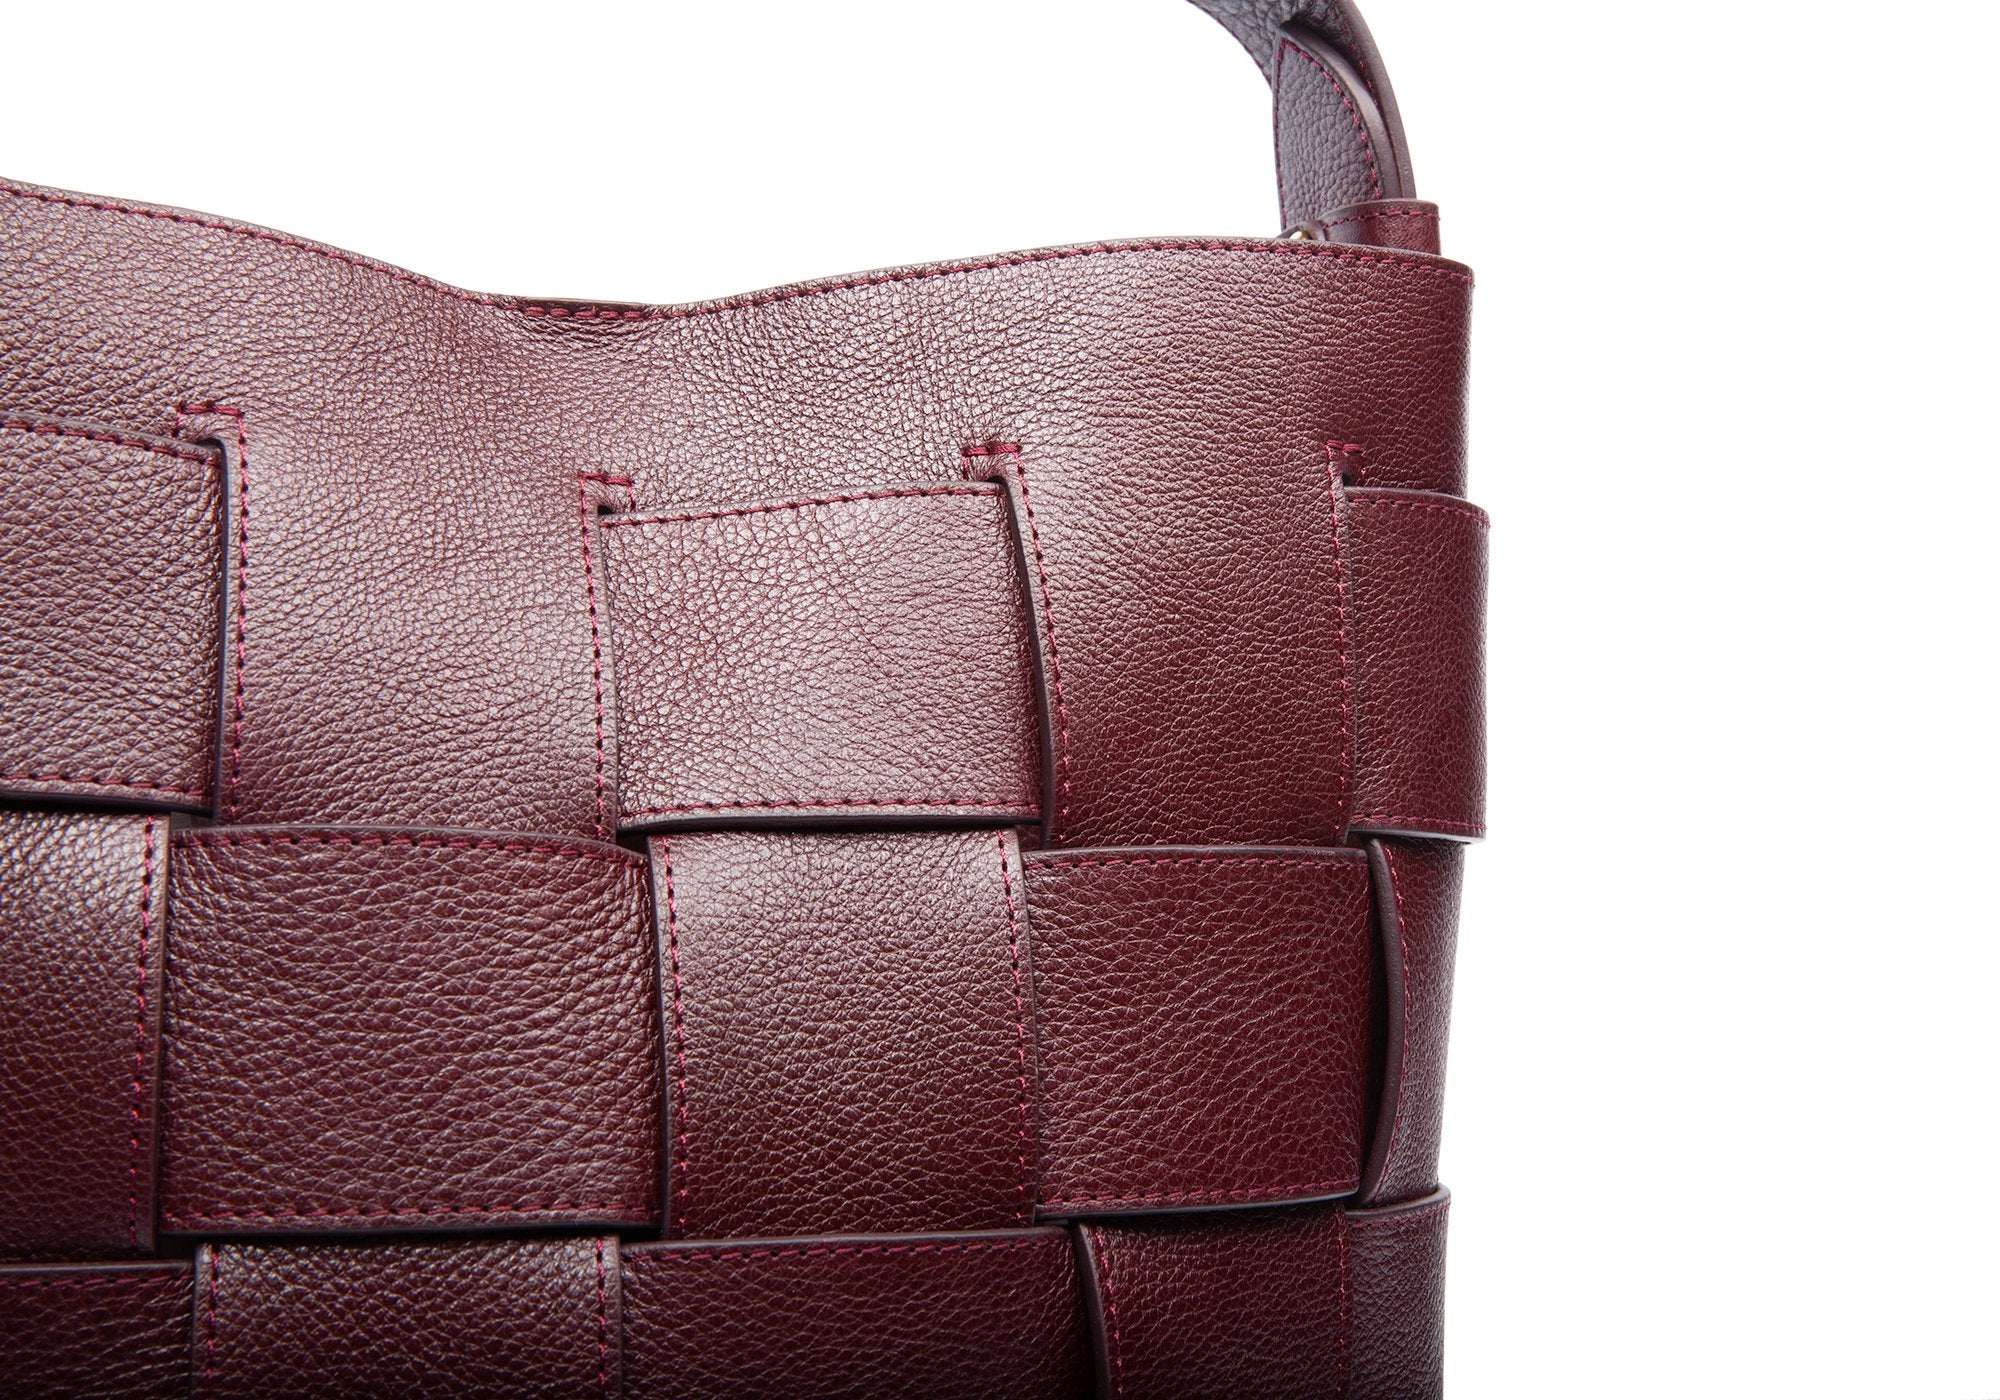 Woven Leather Bucket Shoulder Bag Cordovan